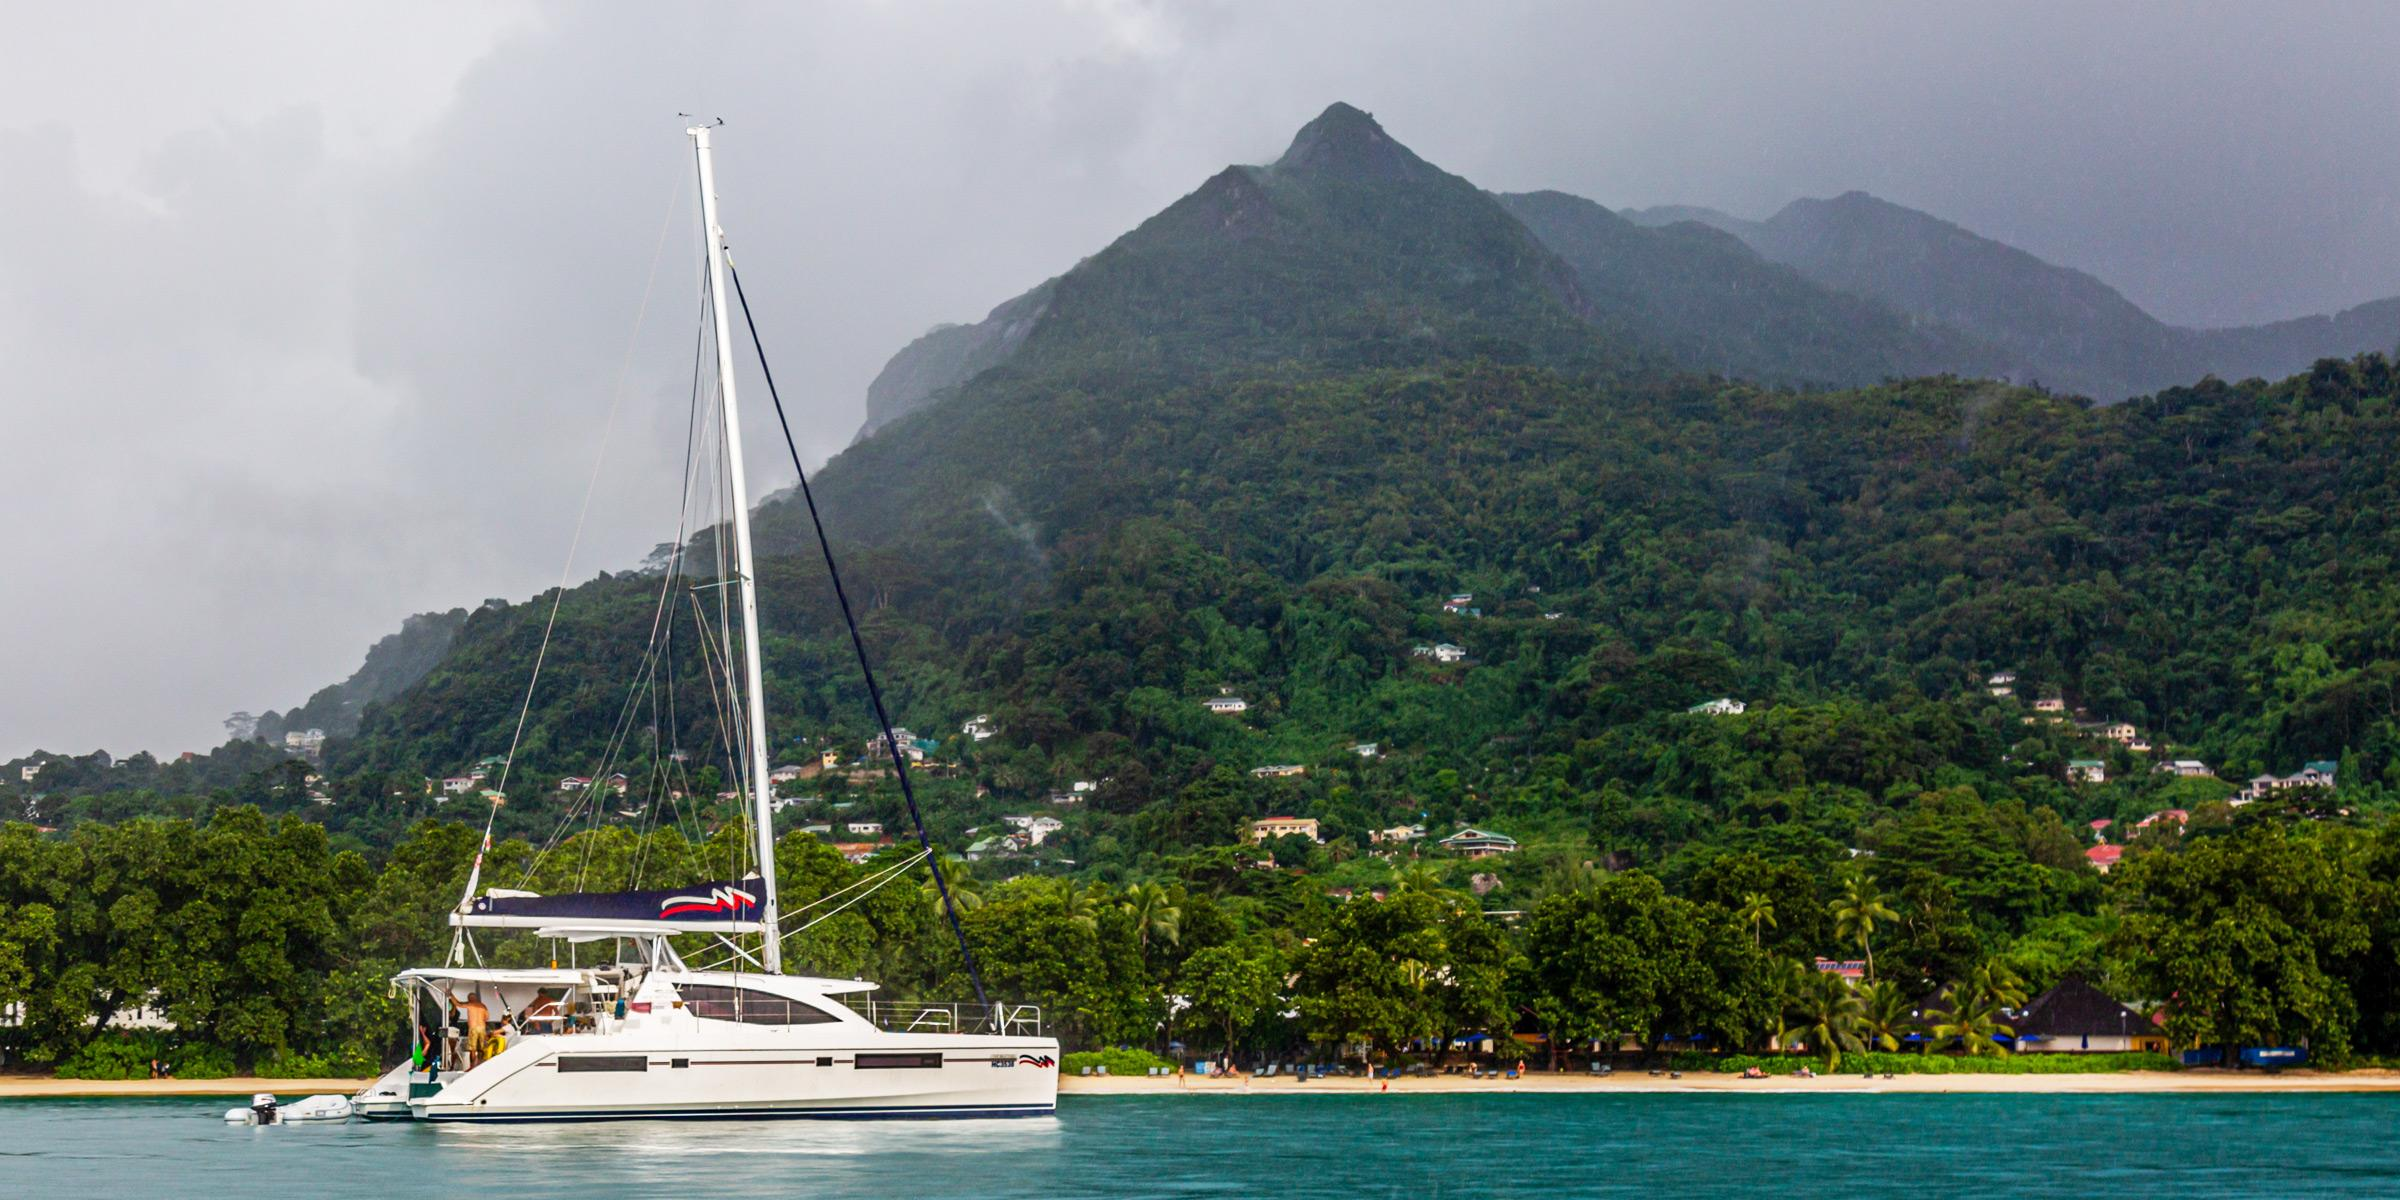 Moorings 4800 anchoring in the Seychelles